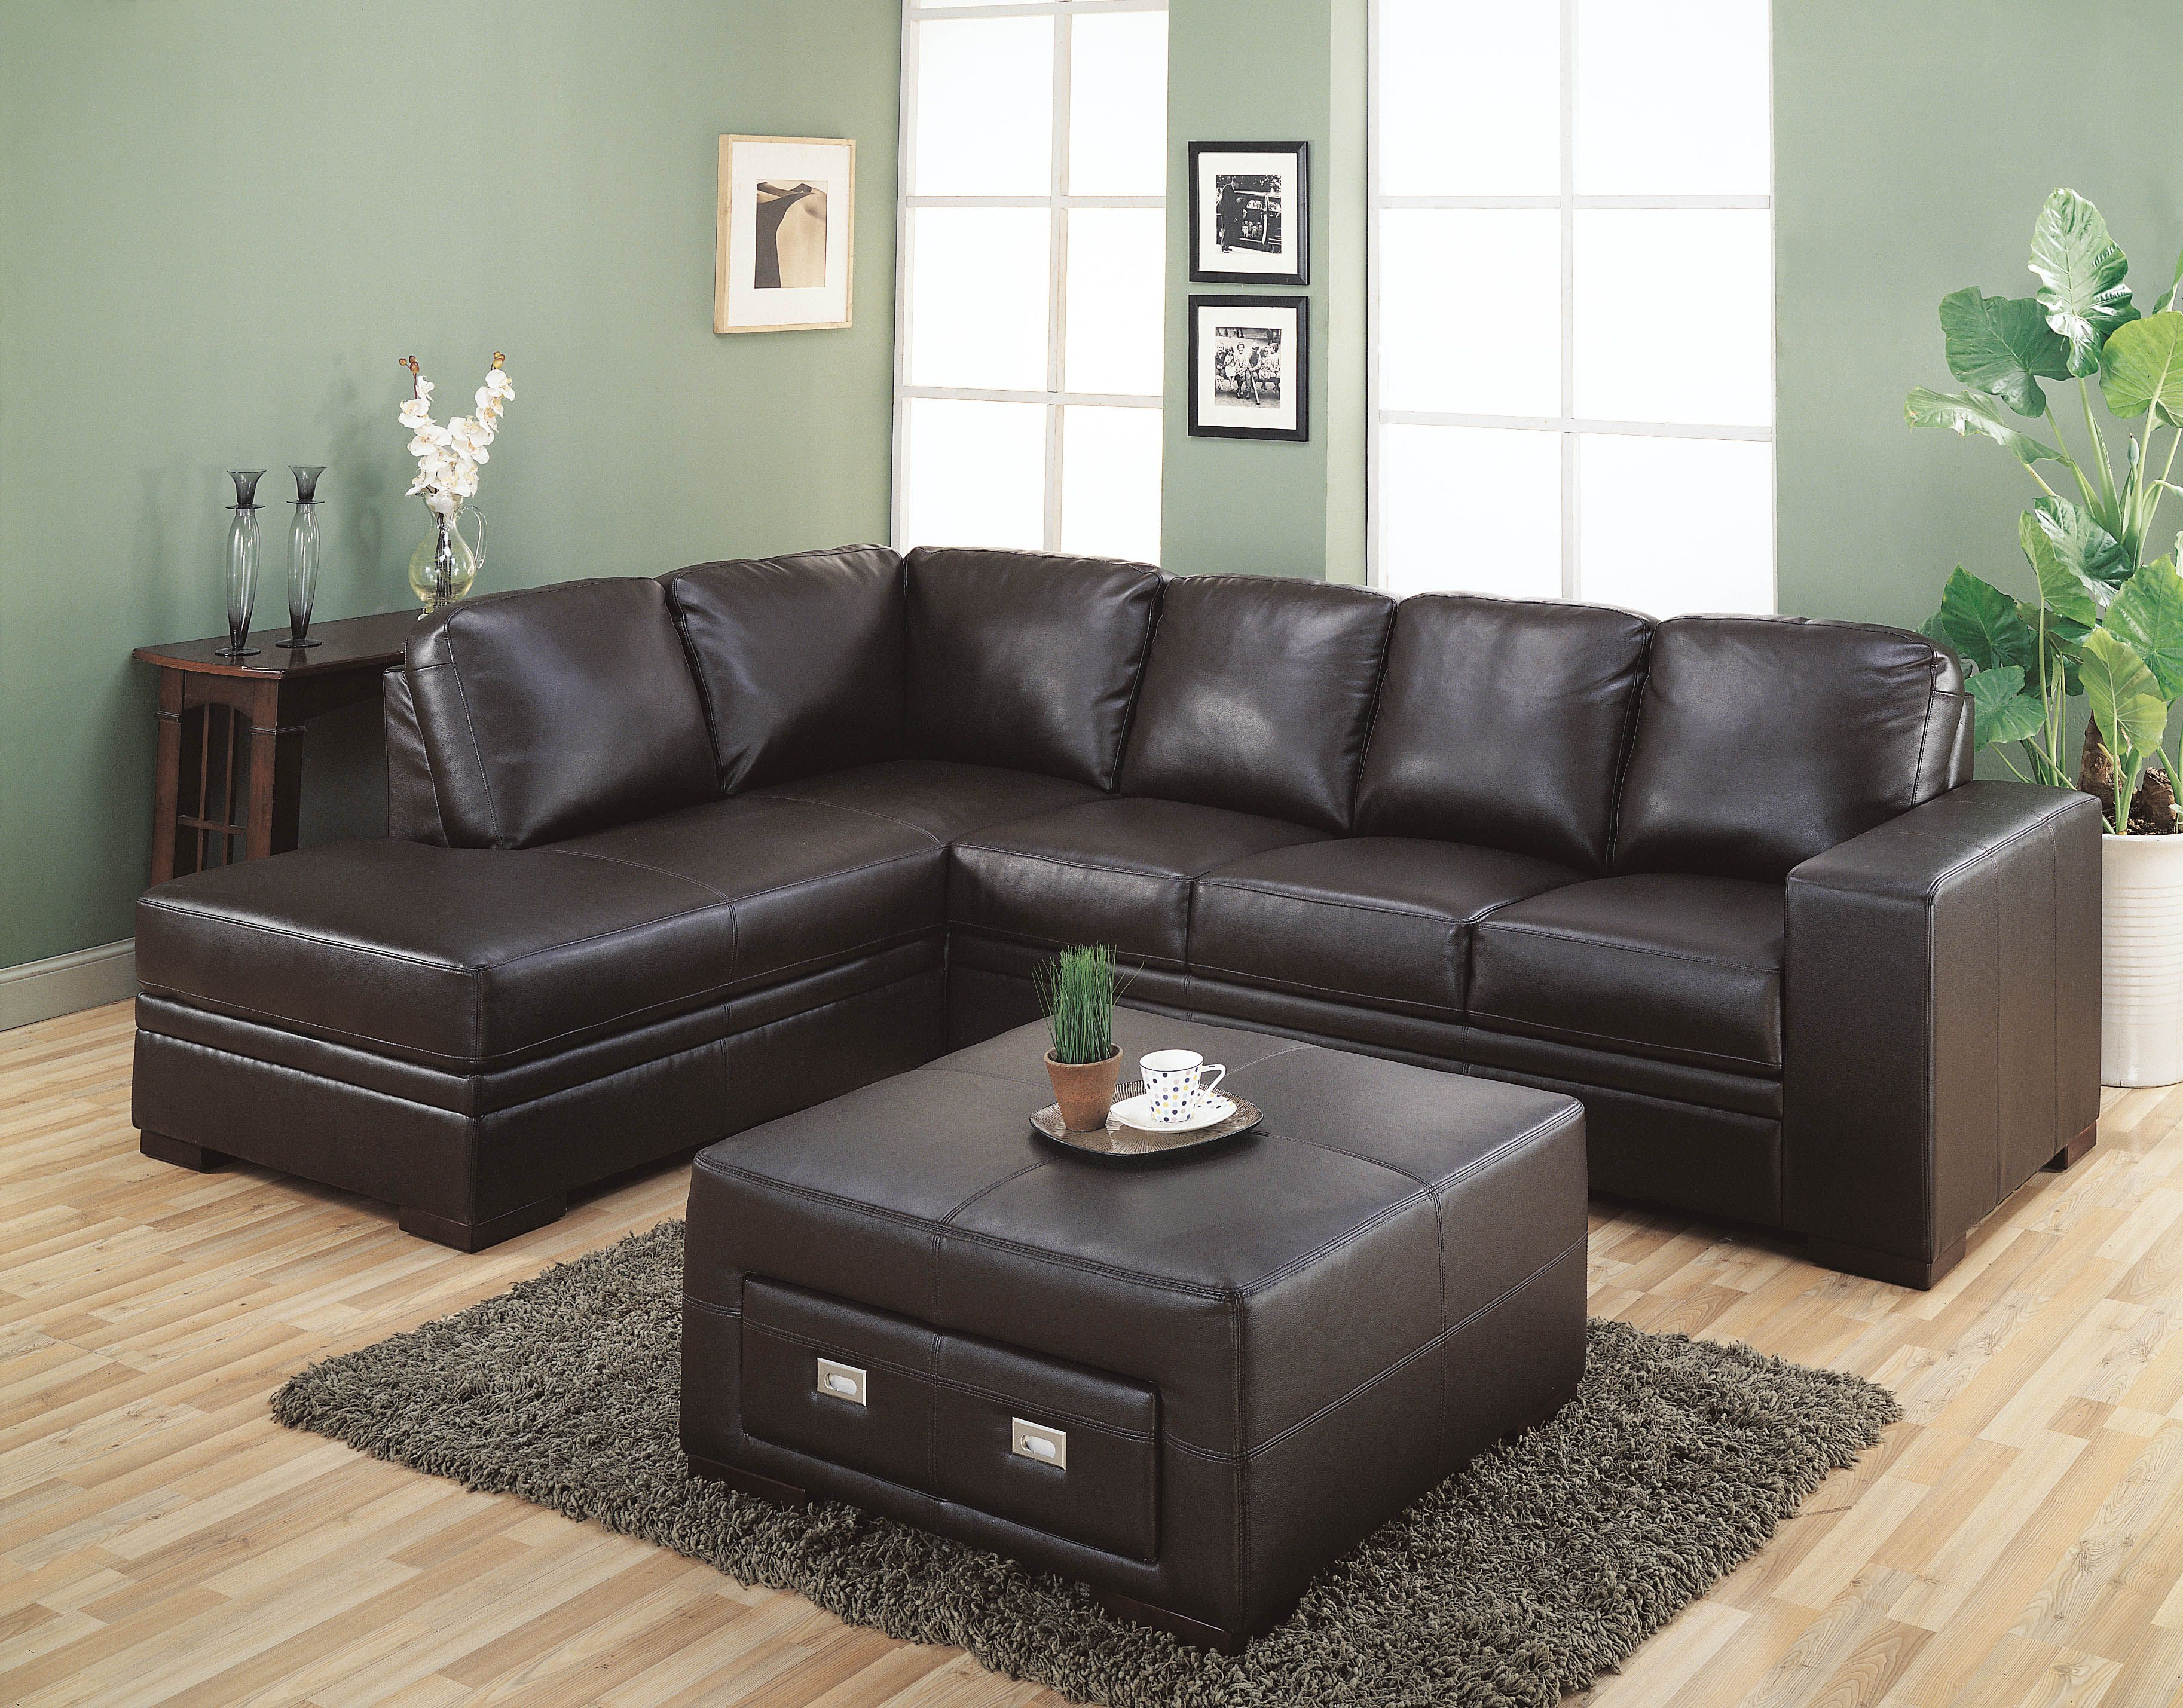 Awesome Living Room Decoration With L Shape Brown Leather Sofa Also Square Tabl Brown Leather Sofa Living Room Leather Sofa Living Room Dark Brown Leather Sofa